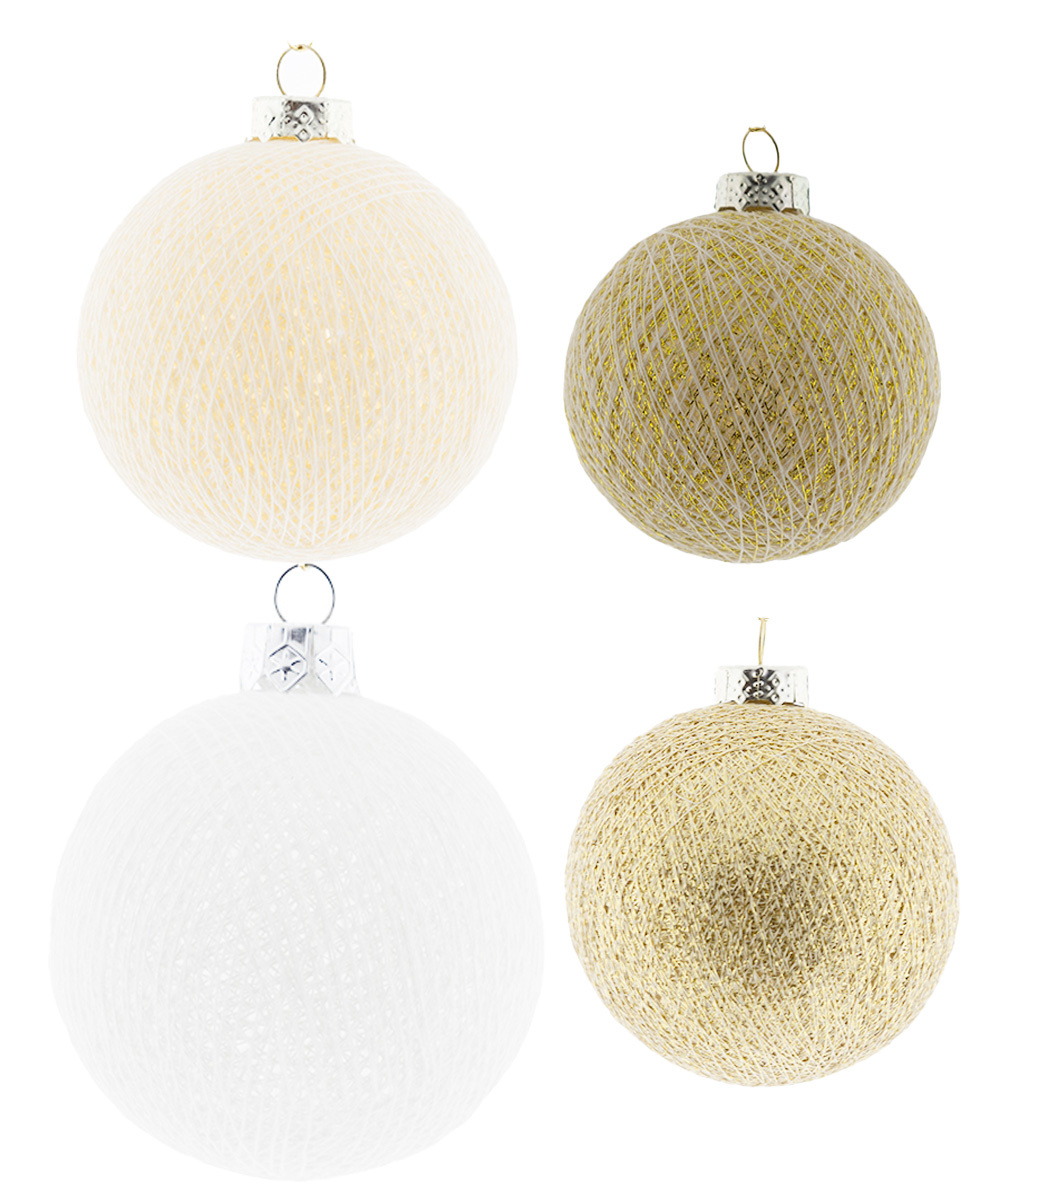 Kerstmis Cotton Balls - Touch of Gold Premium